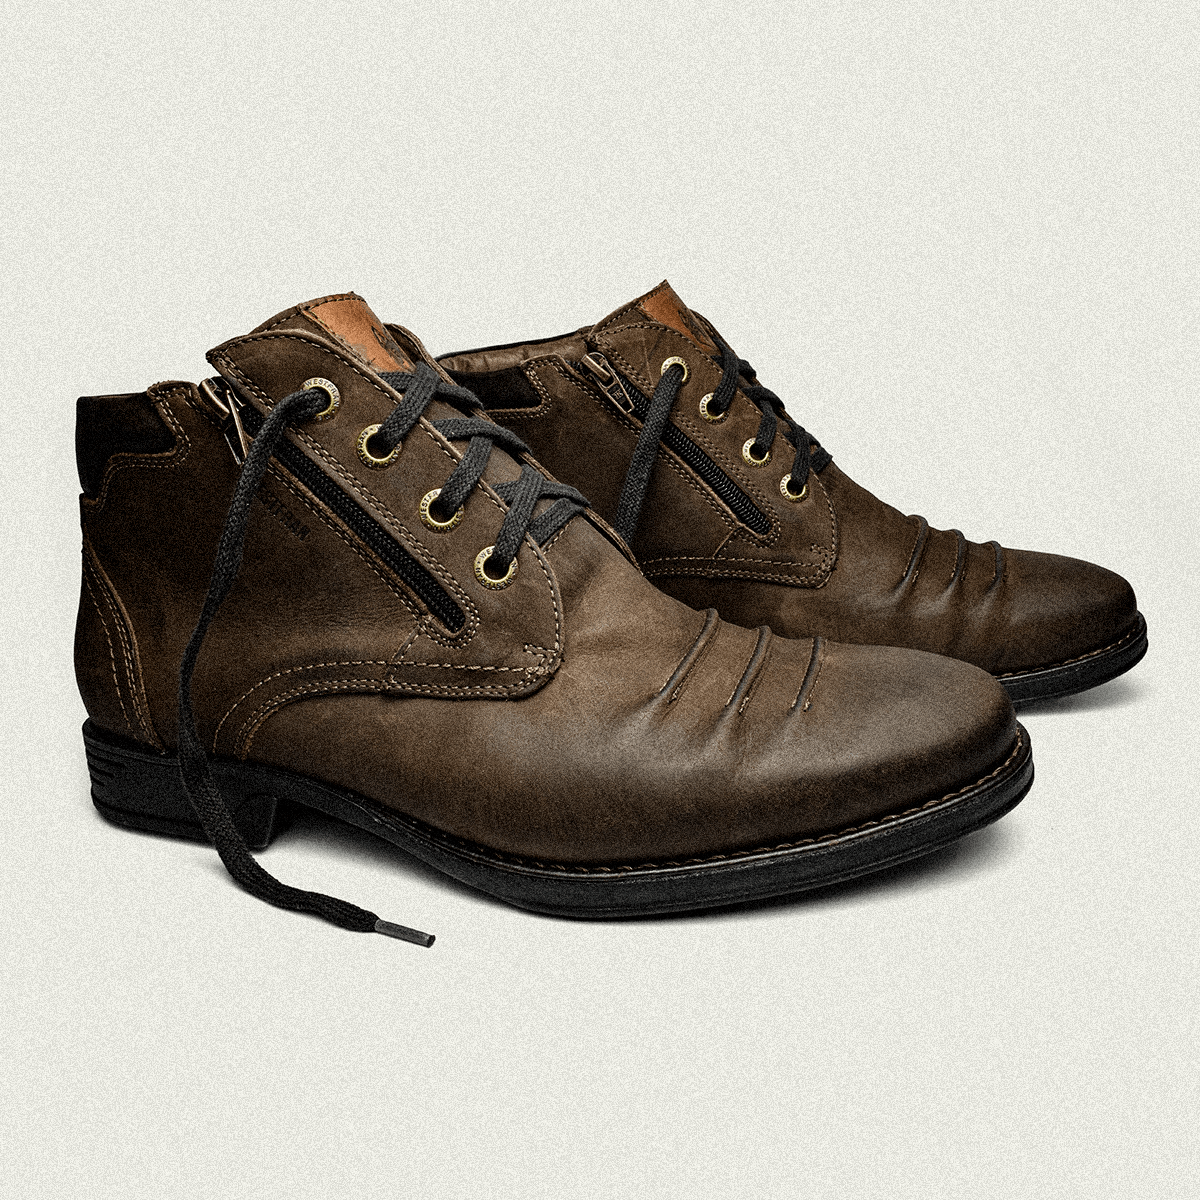 Bota Dress Masculina York 21 Jade Castanho